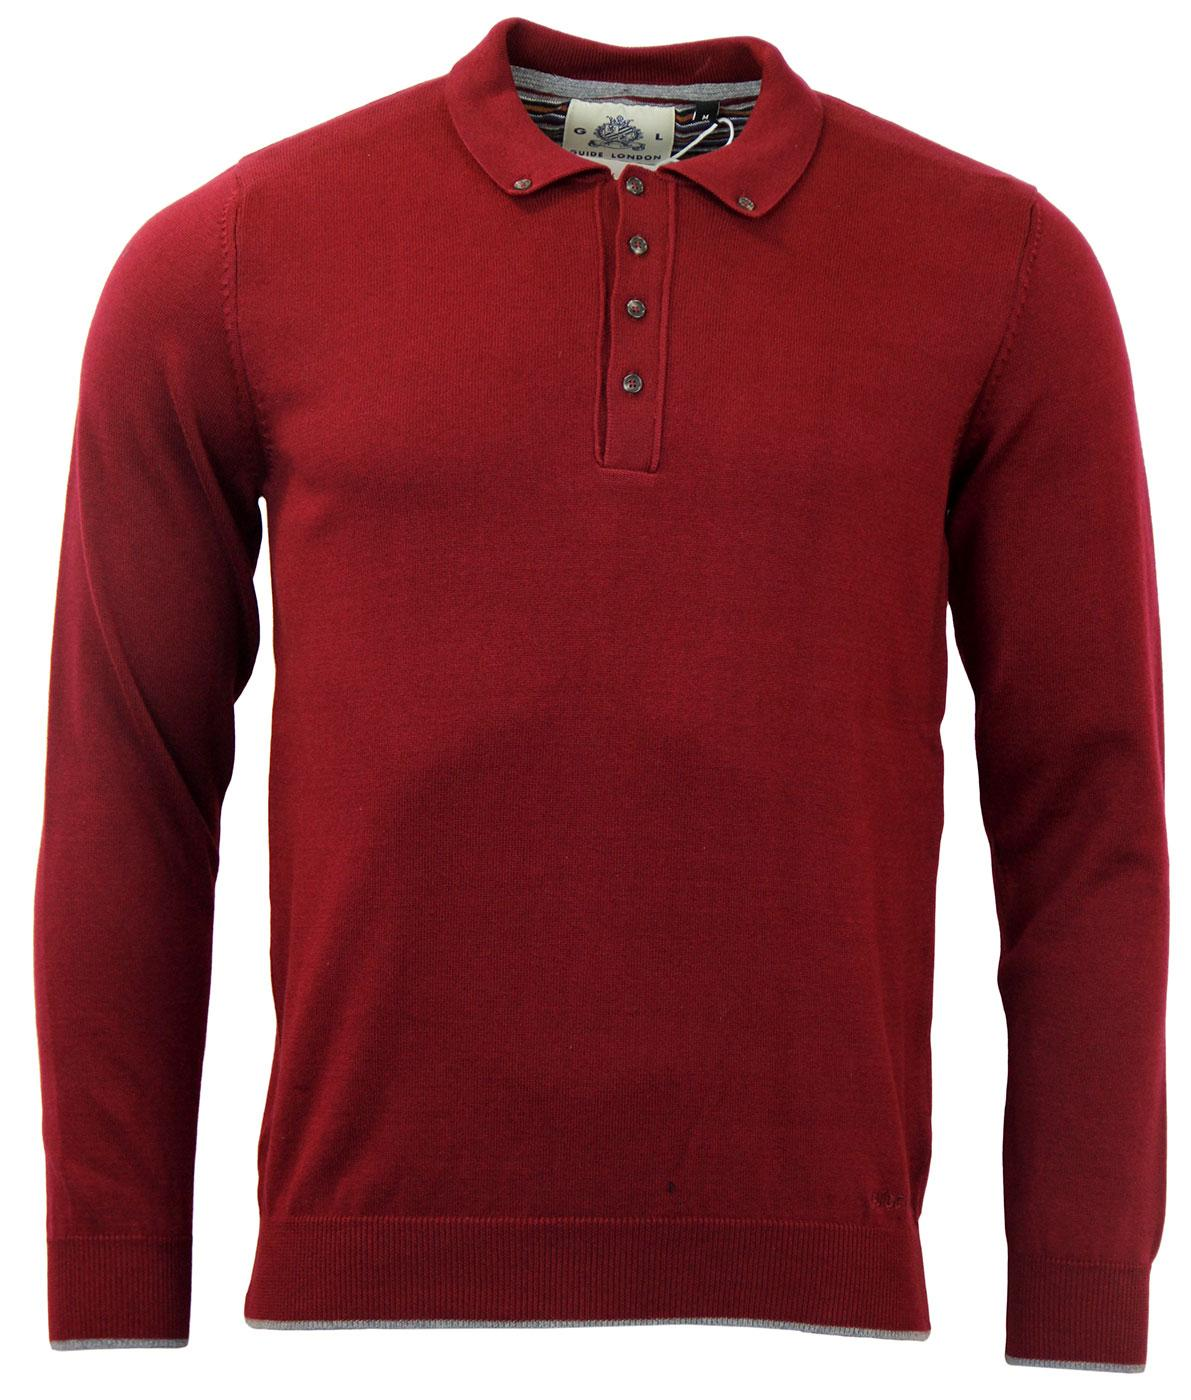 GUIDE LONDON Retro Mod Button Down Knitted Polo